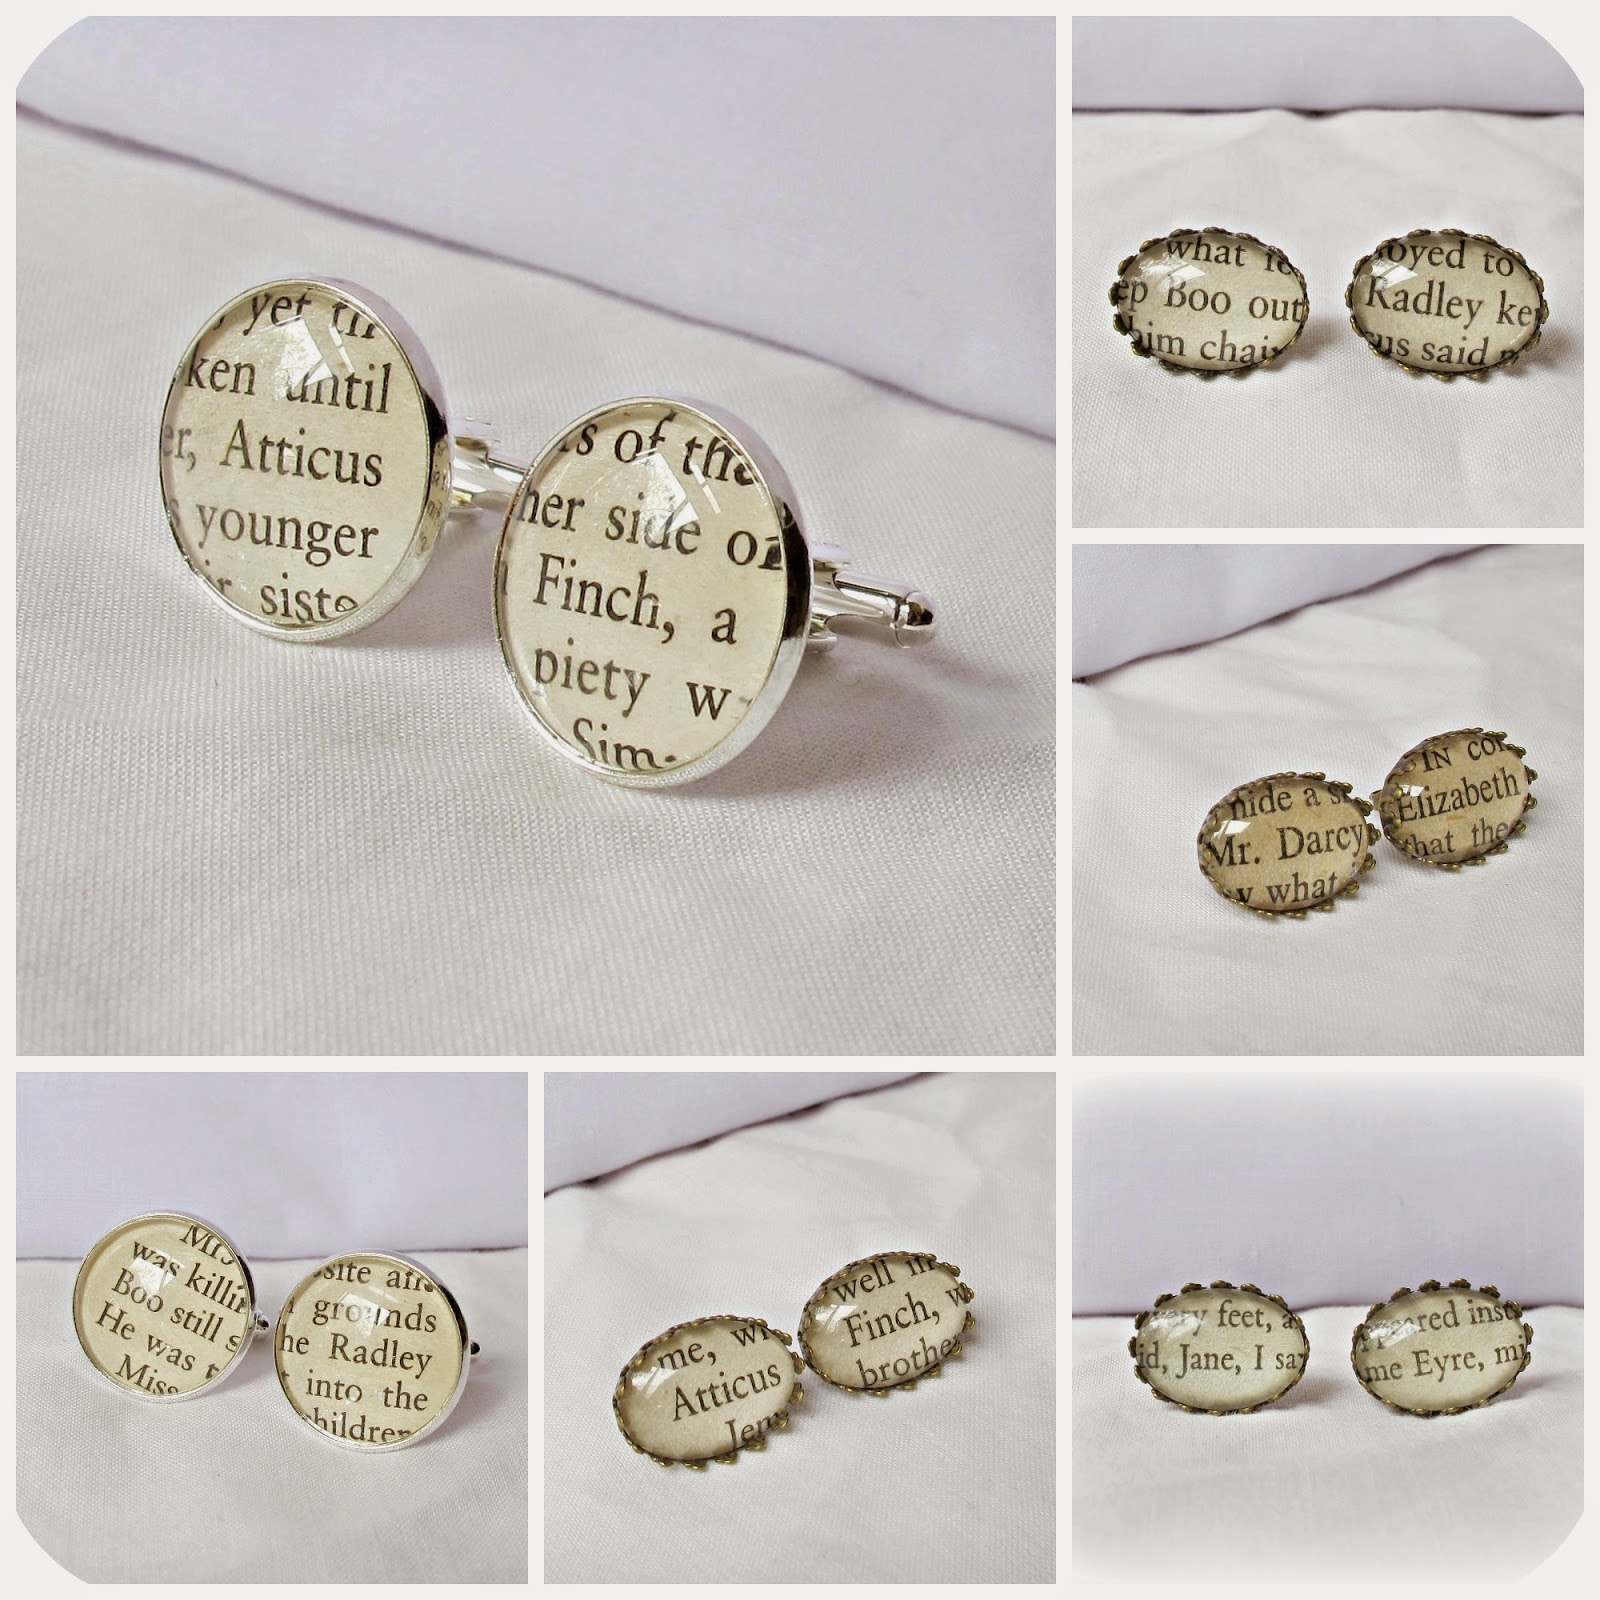 image literature jewellery cufflinks earrings two cheeky monkeys to kill a mockingbird pride and prejudice jane eyre mr darcy boo radley atticus finch